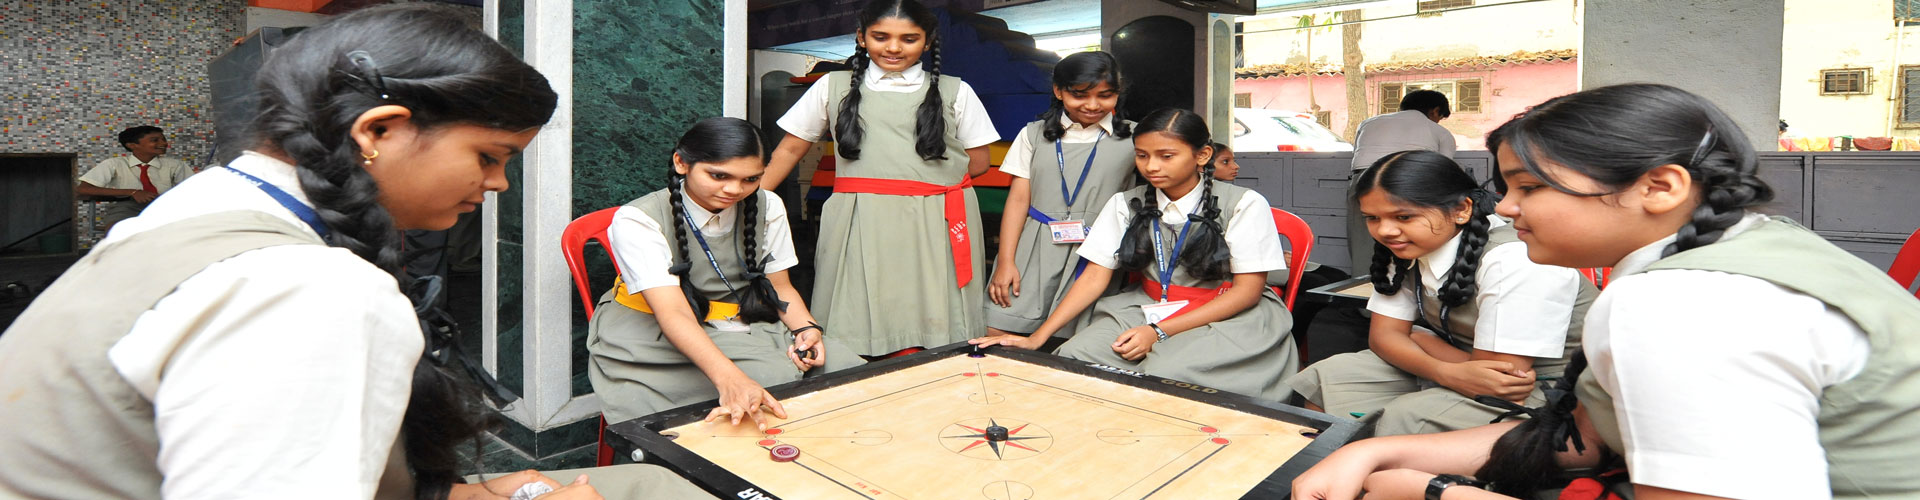 INDOOR-GAME-CARROM